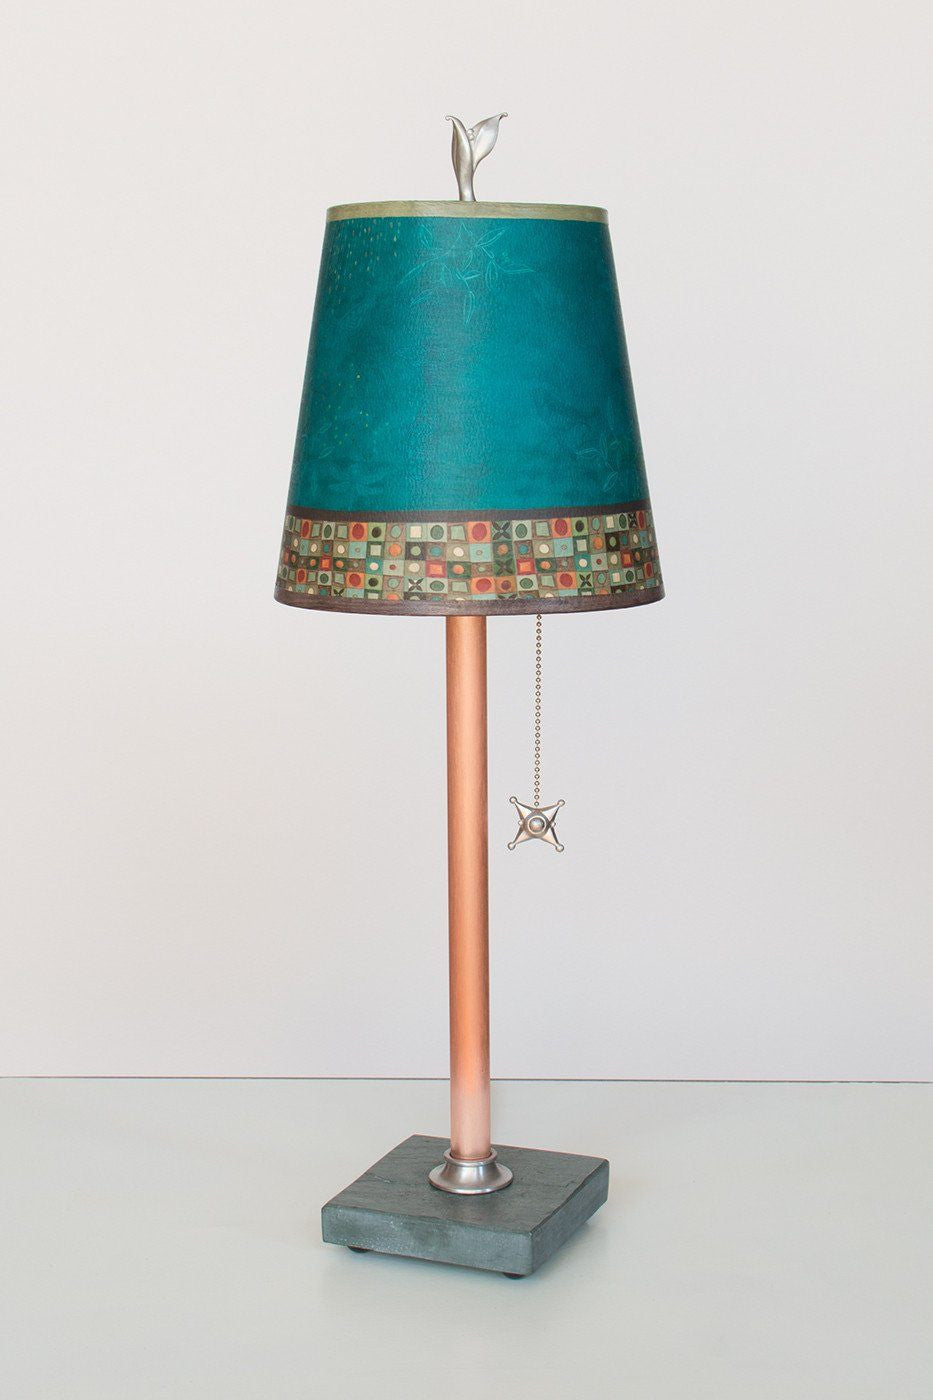 Copper Table Lamp on Vermont Slate Base with Small Drum Shade in Jade Mosaic